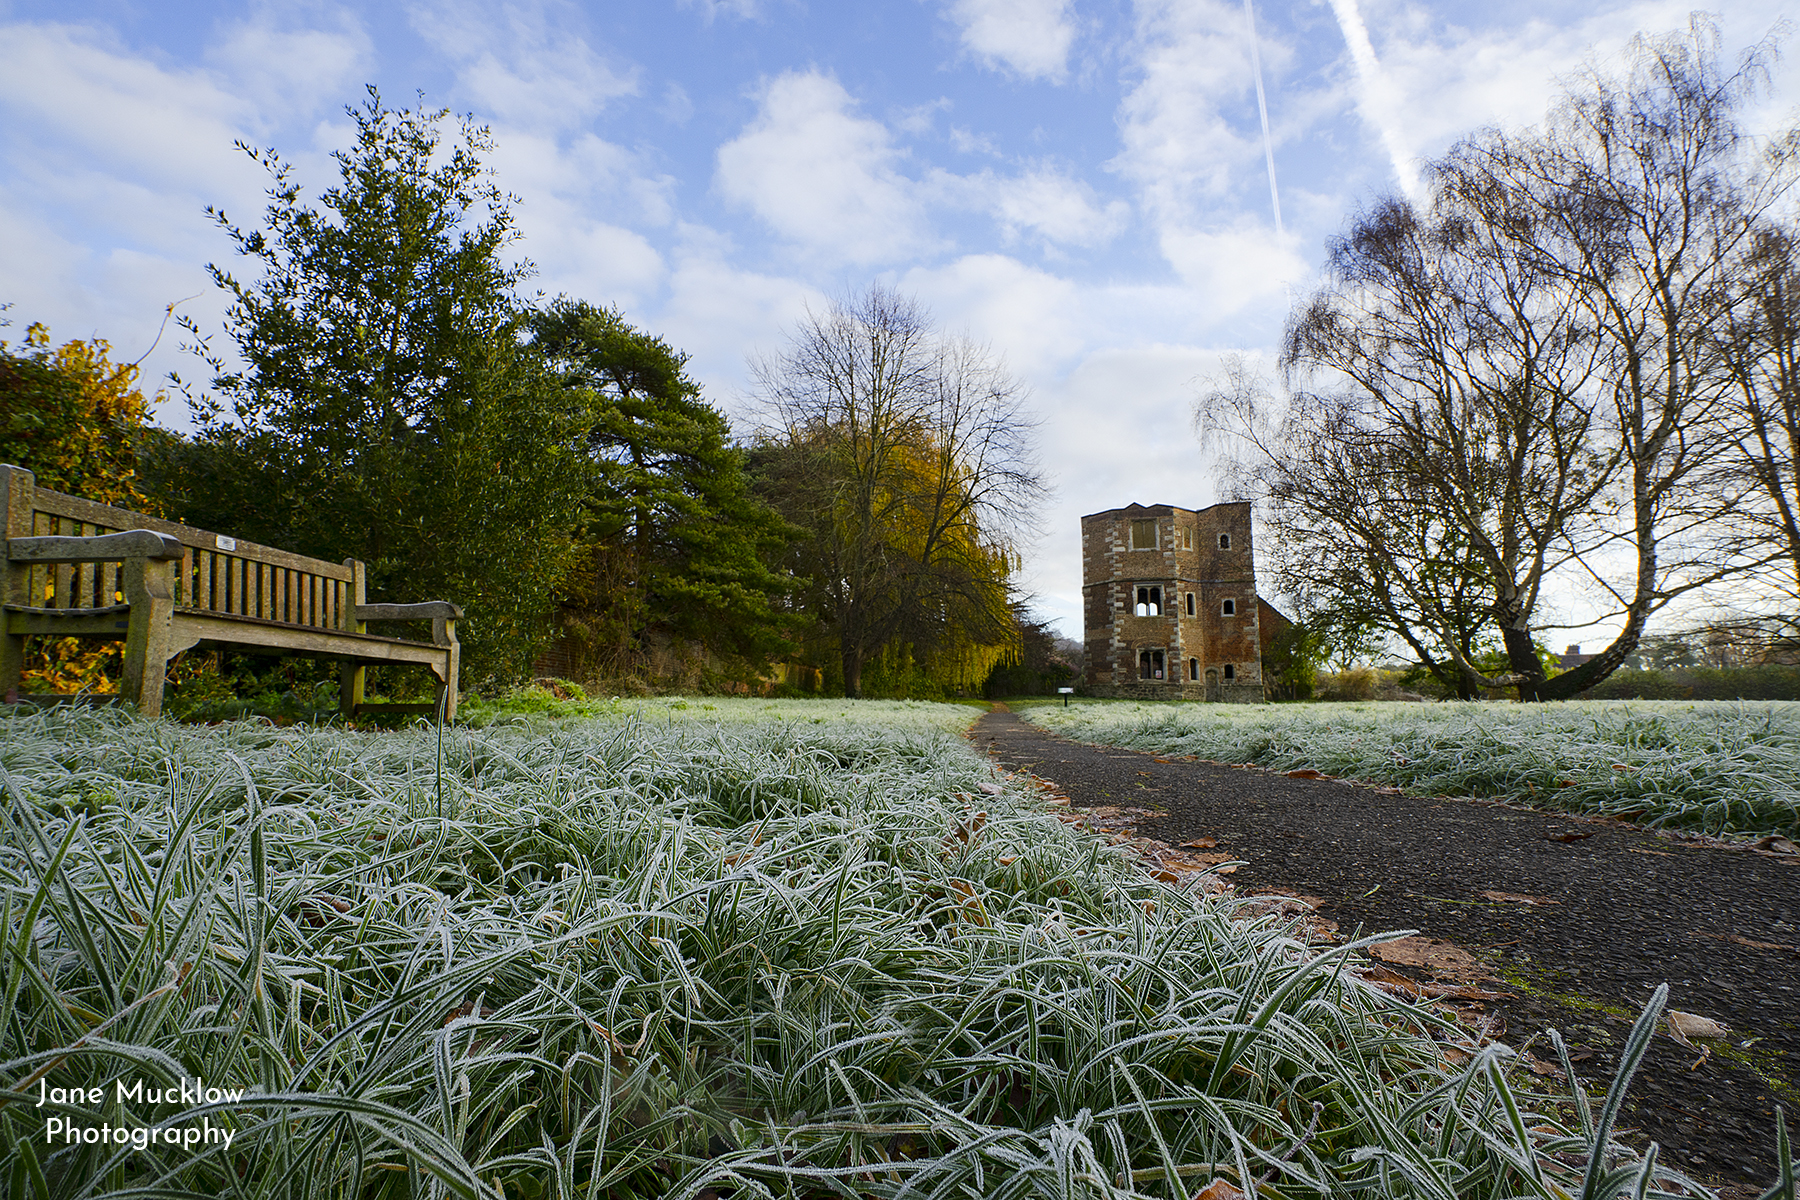 Photograph by Jane Mucklow of Otford Palace on a frosty morning